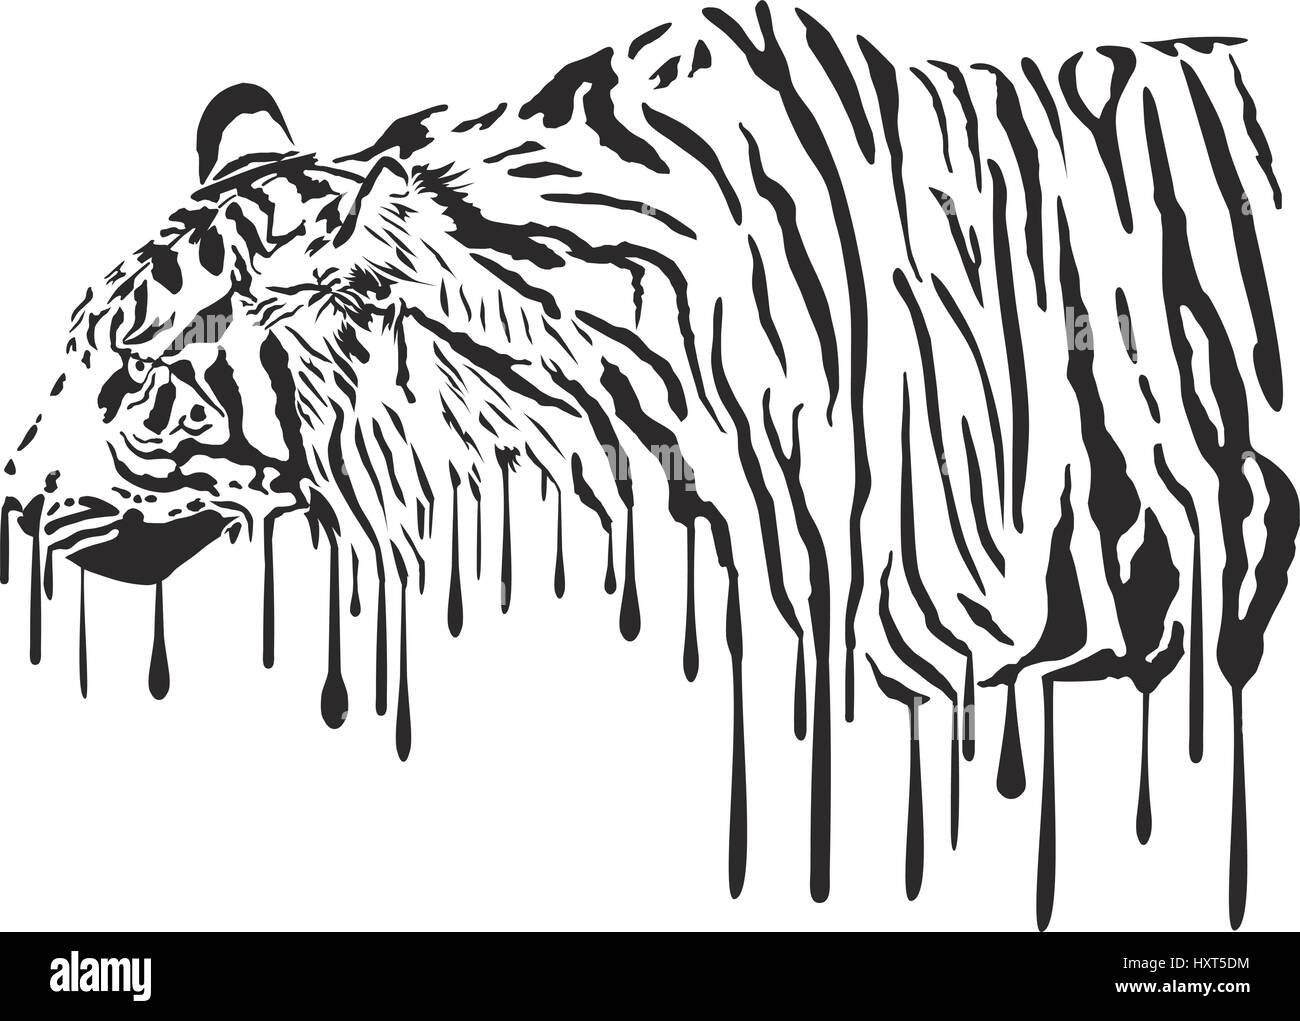 Tiger, Abstract Painting On A White Background - Stock Vector